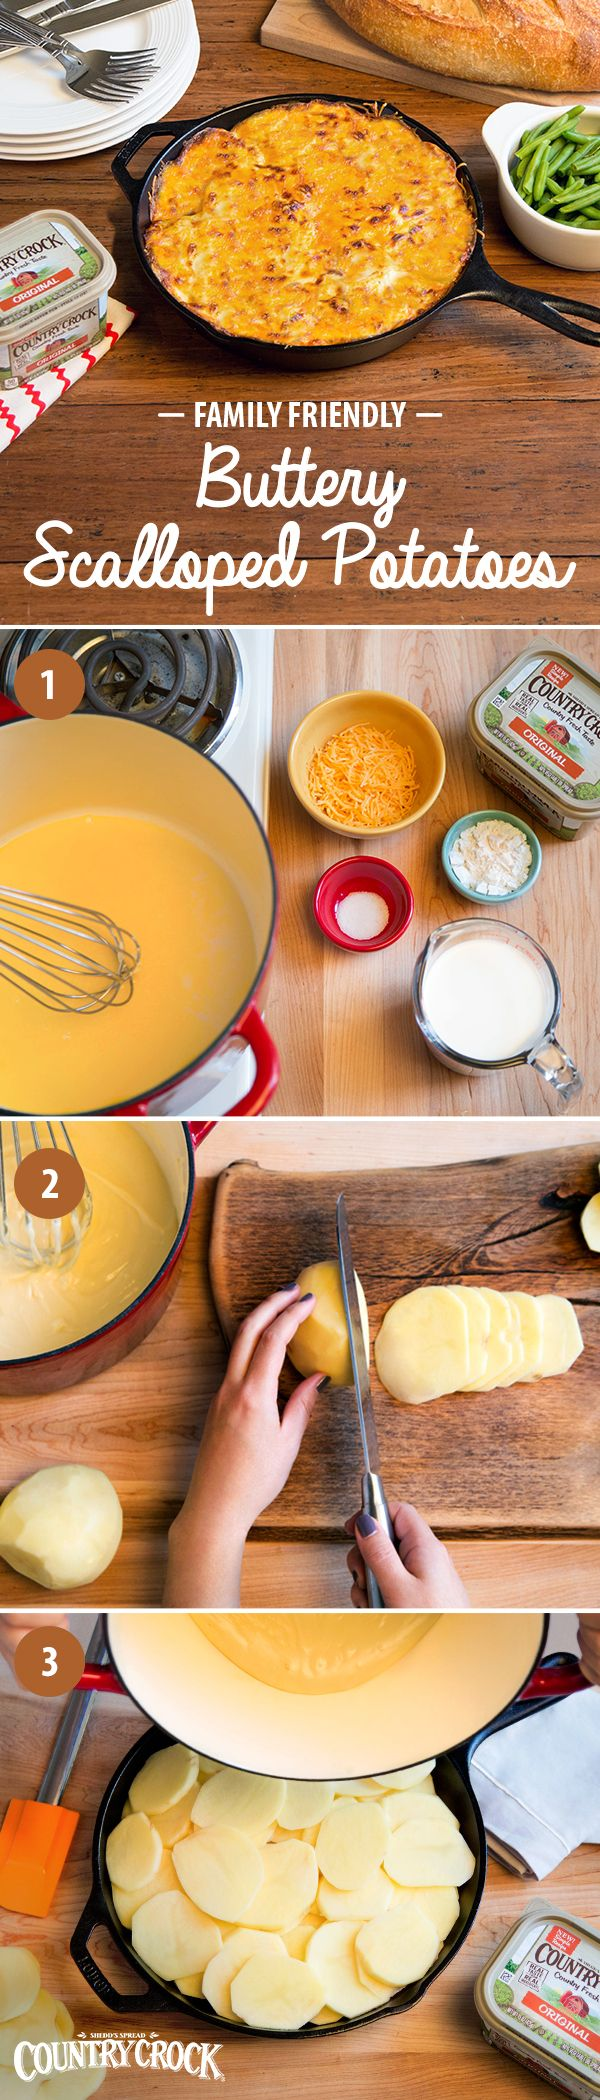 Nothing keeps 'em coming back for seconds like a family favorite: homemade scalloped potatoes. Made with the country fresh taste and real, simple ingredients of Country Crock®, this winter staple will have picky eaters cleaning their plates! Melt spread, then whisk in flour, milk, salt & finally cheese before layering potatoes in a baking dish and topping with this delicious mixture. For a memorable meal, pair with a beautiful roasted chicken!